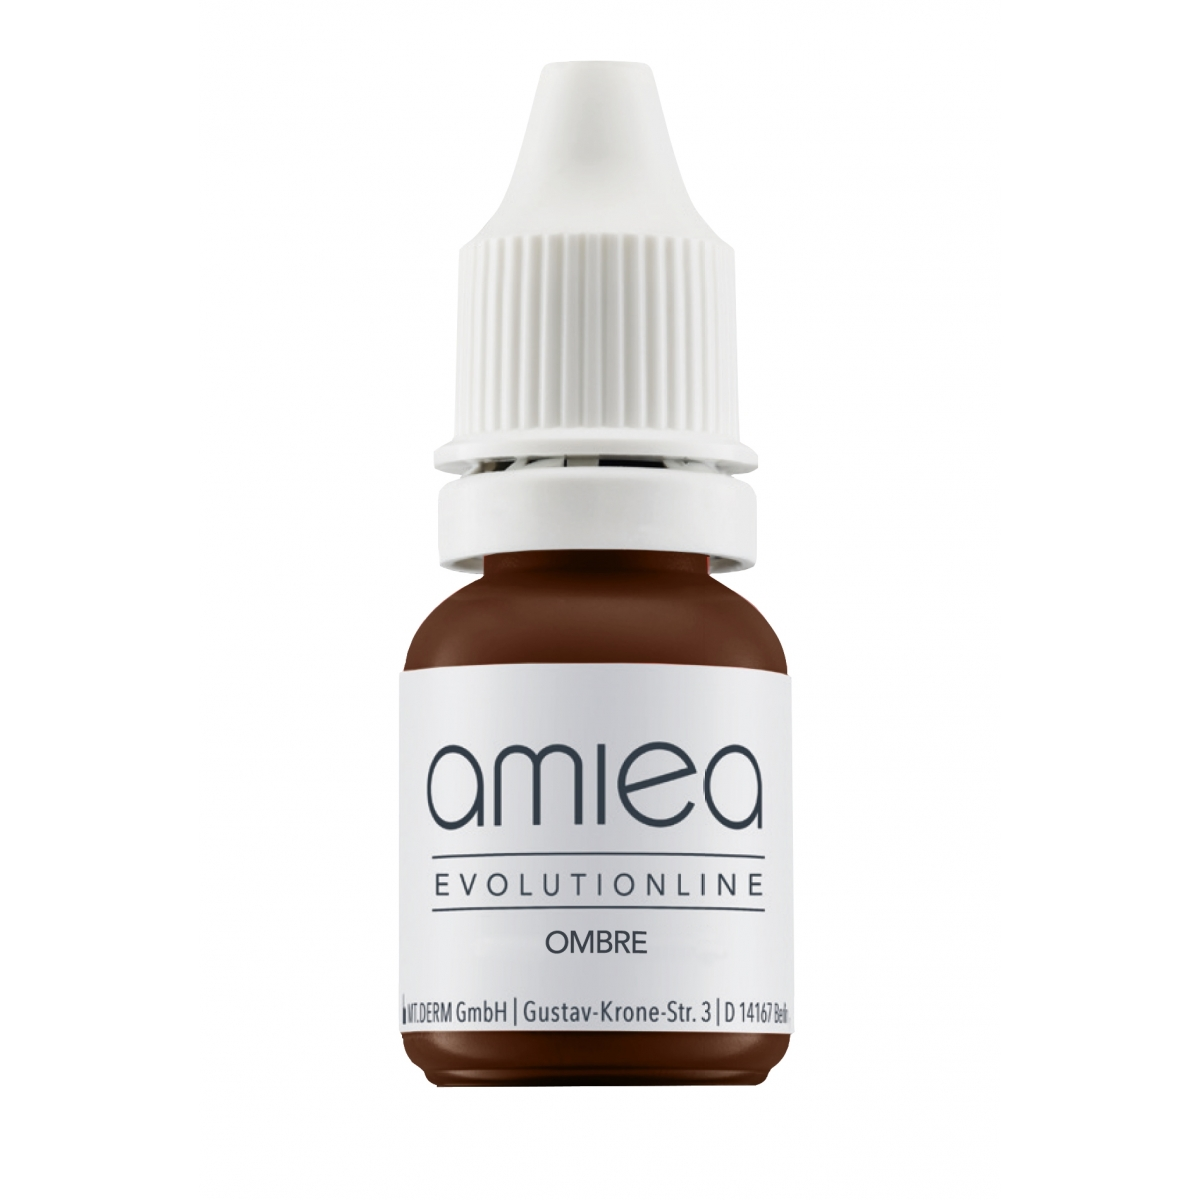 Evolutionline (5 ml) - PIGMENTS AMIEA EVOLUTIONLINE OMBRE, 5 ml